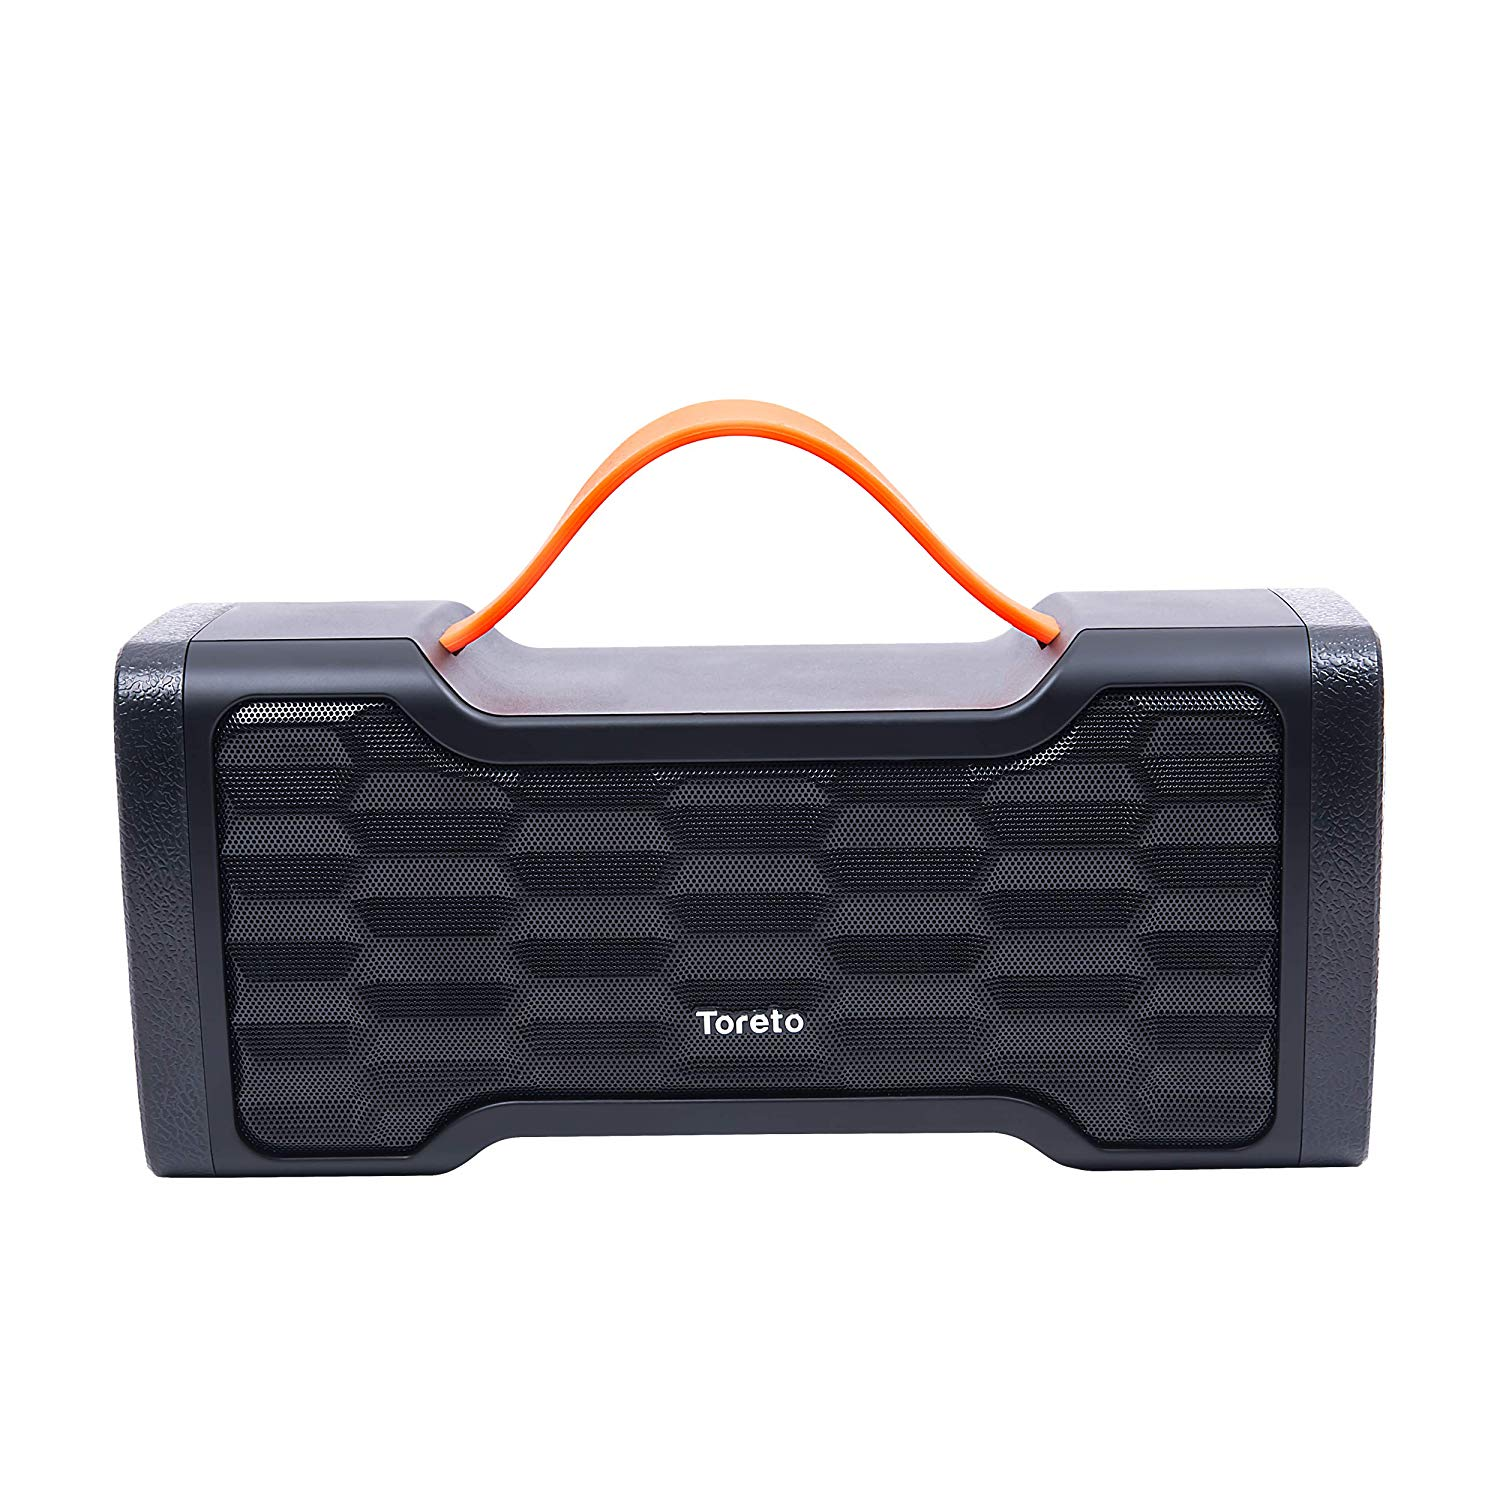 Toreto Storm Wireless Bluetooth Speaker, Water Resistance, Inbuilt Mic TOR 309